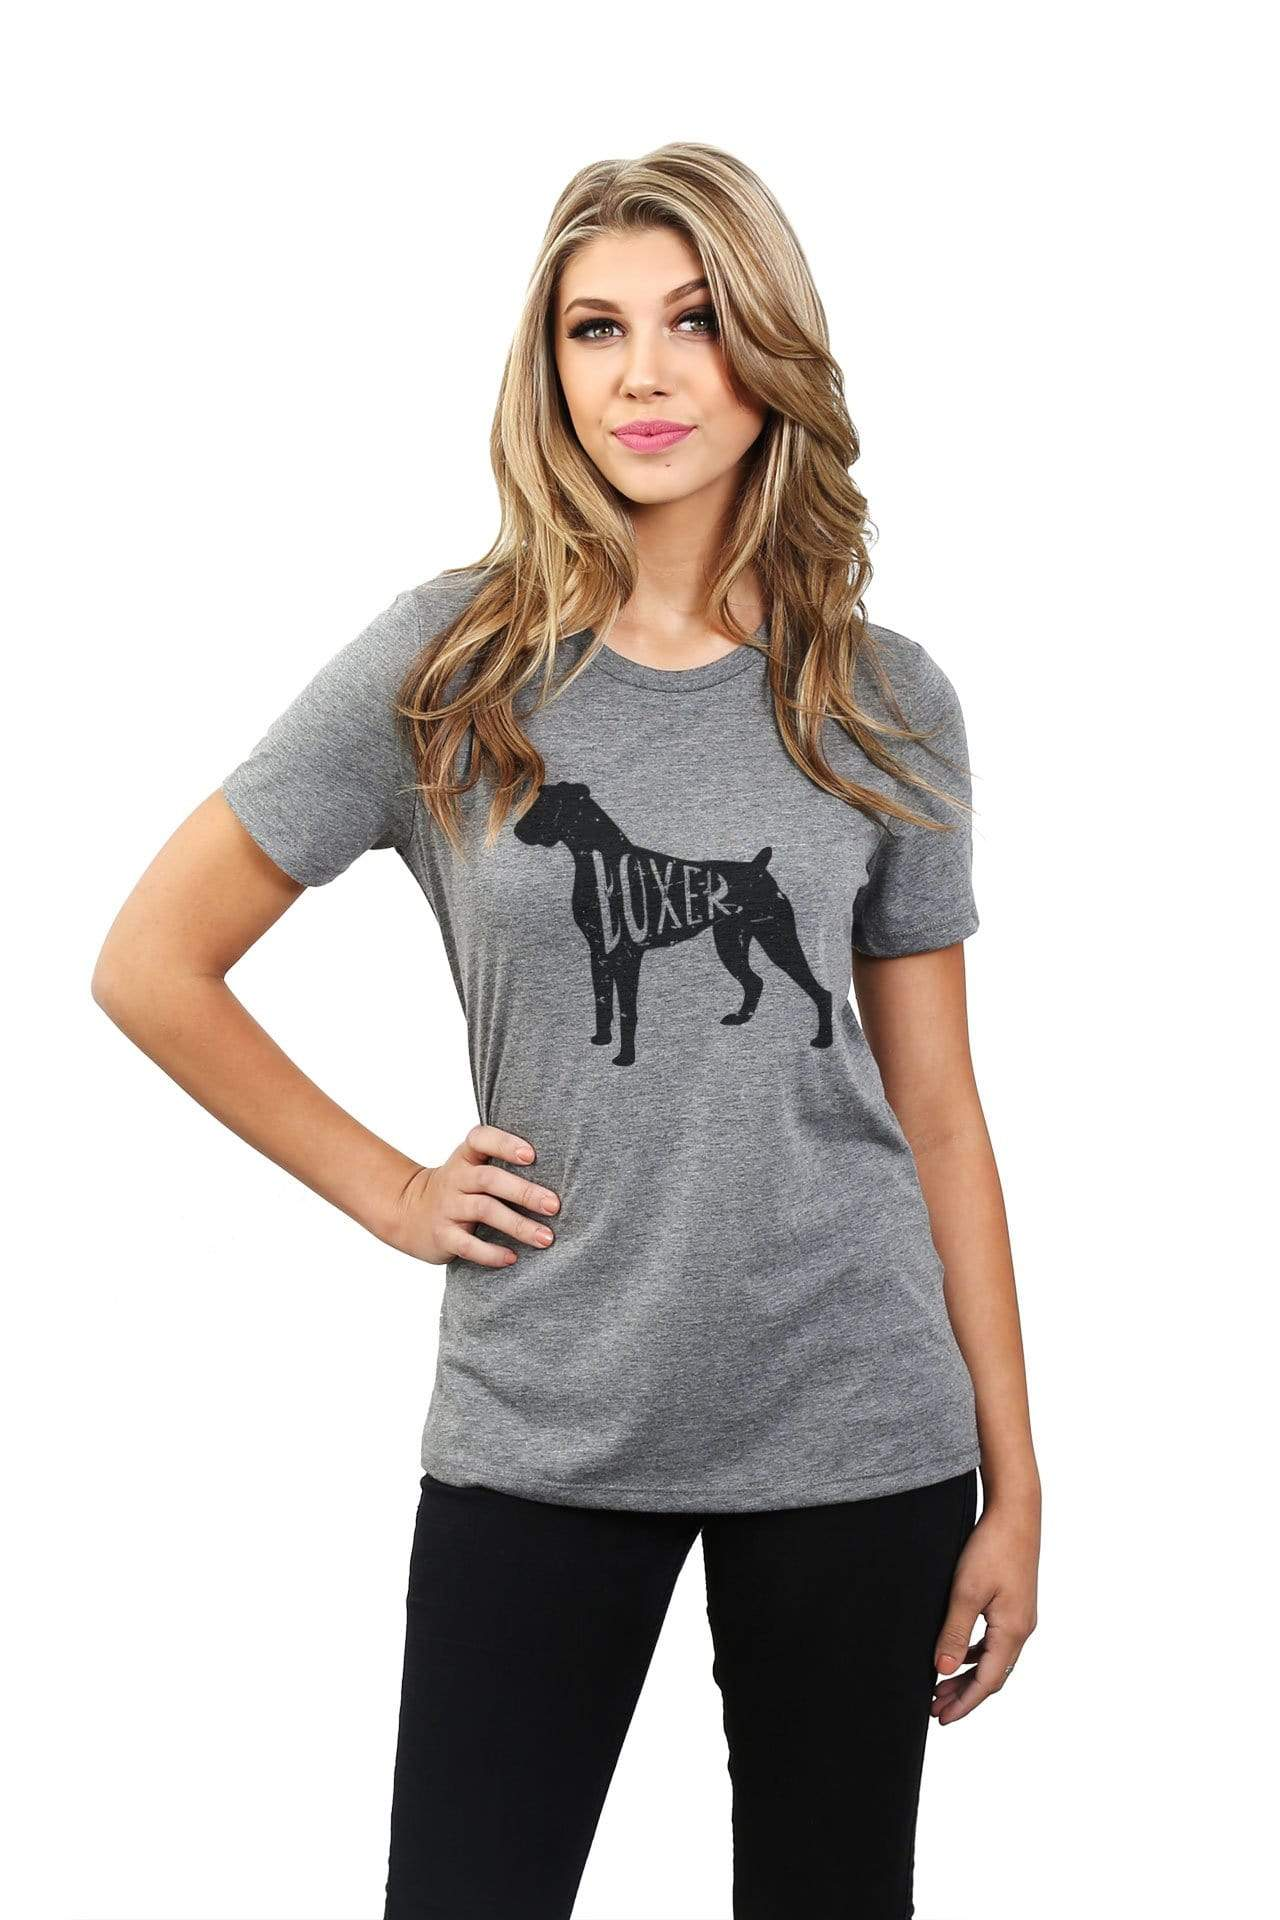 Boxer Dog Silhouette Graphic Women's Heather Grey Relaxed Crew T-Shirt Tee Top